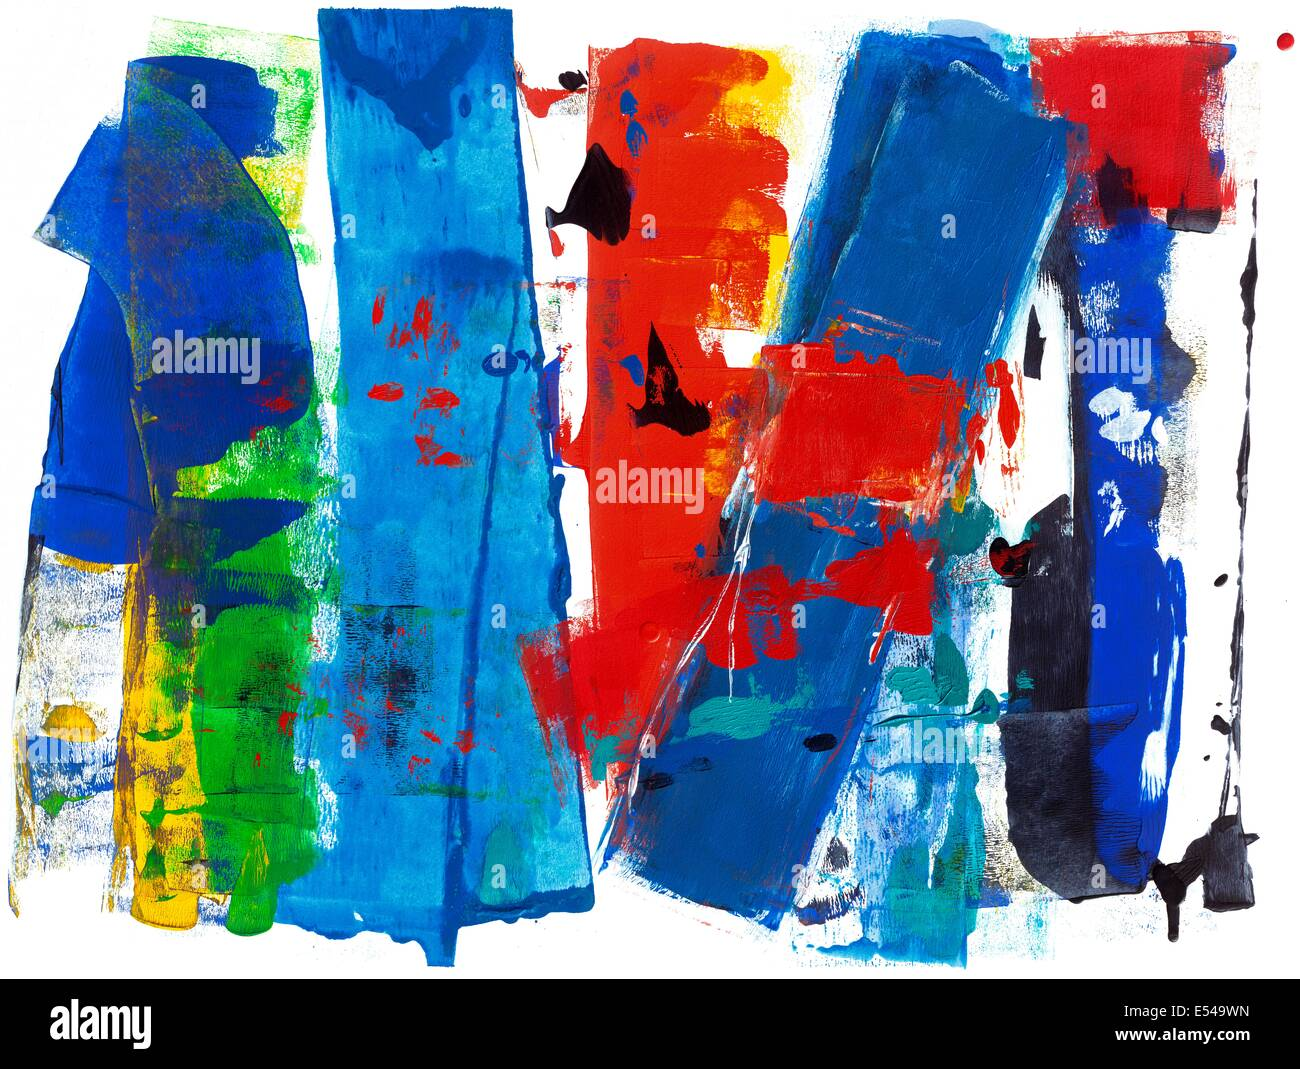 High Society. Multi-colored original abstract art, painting. - Stock Image